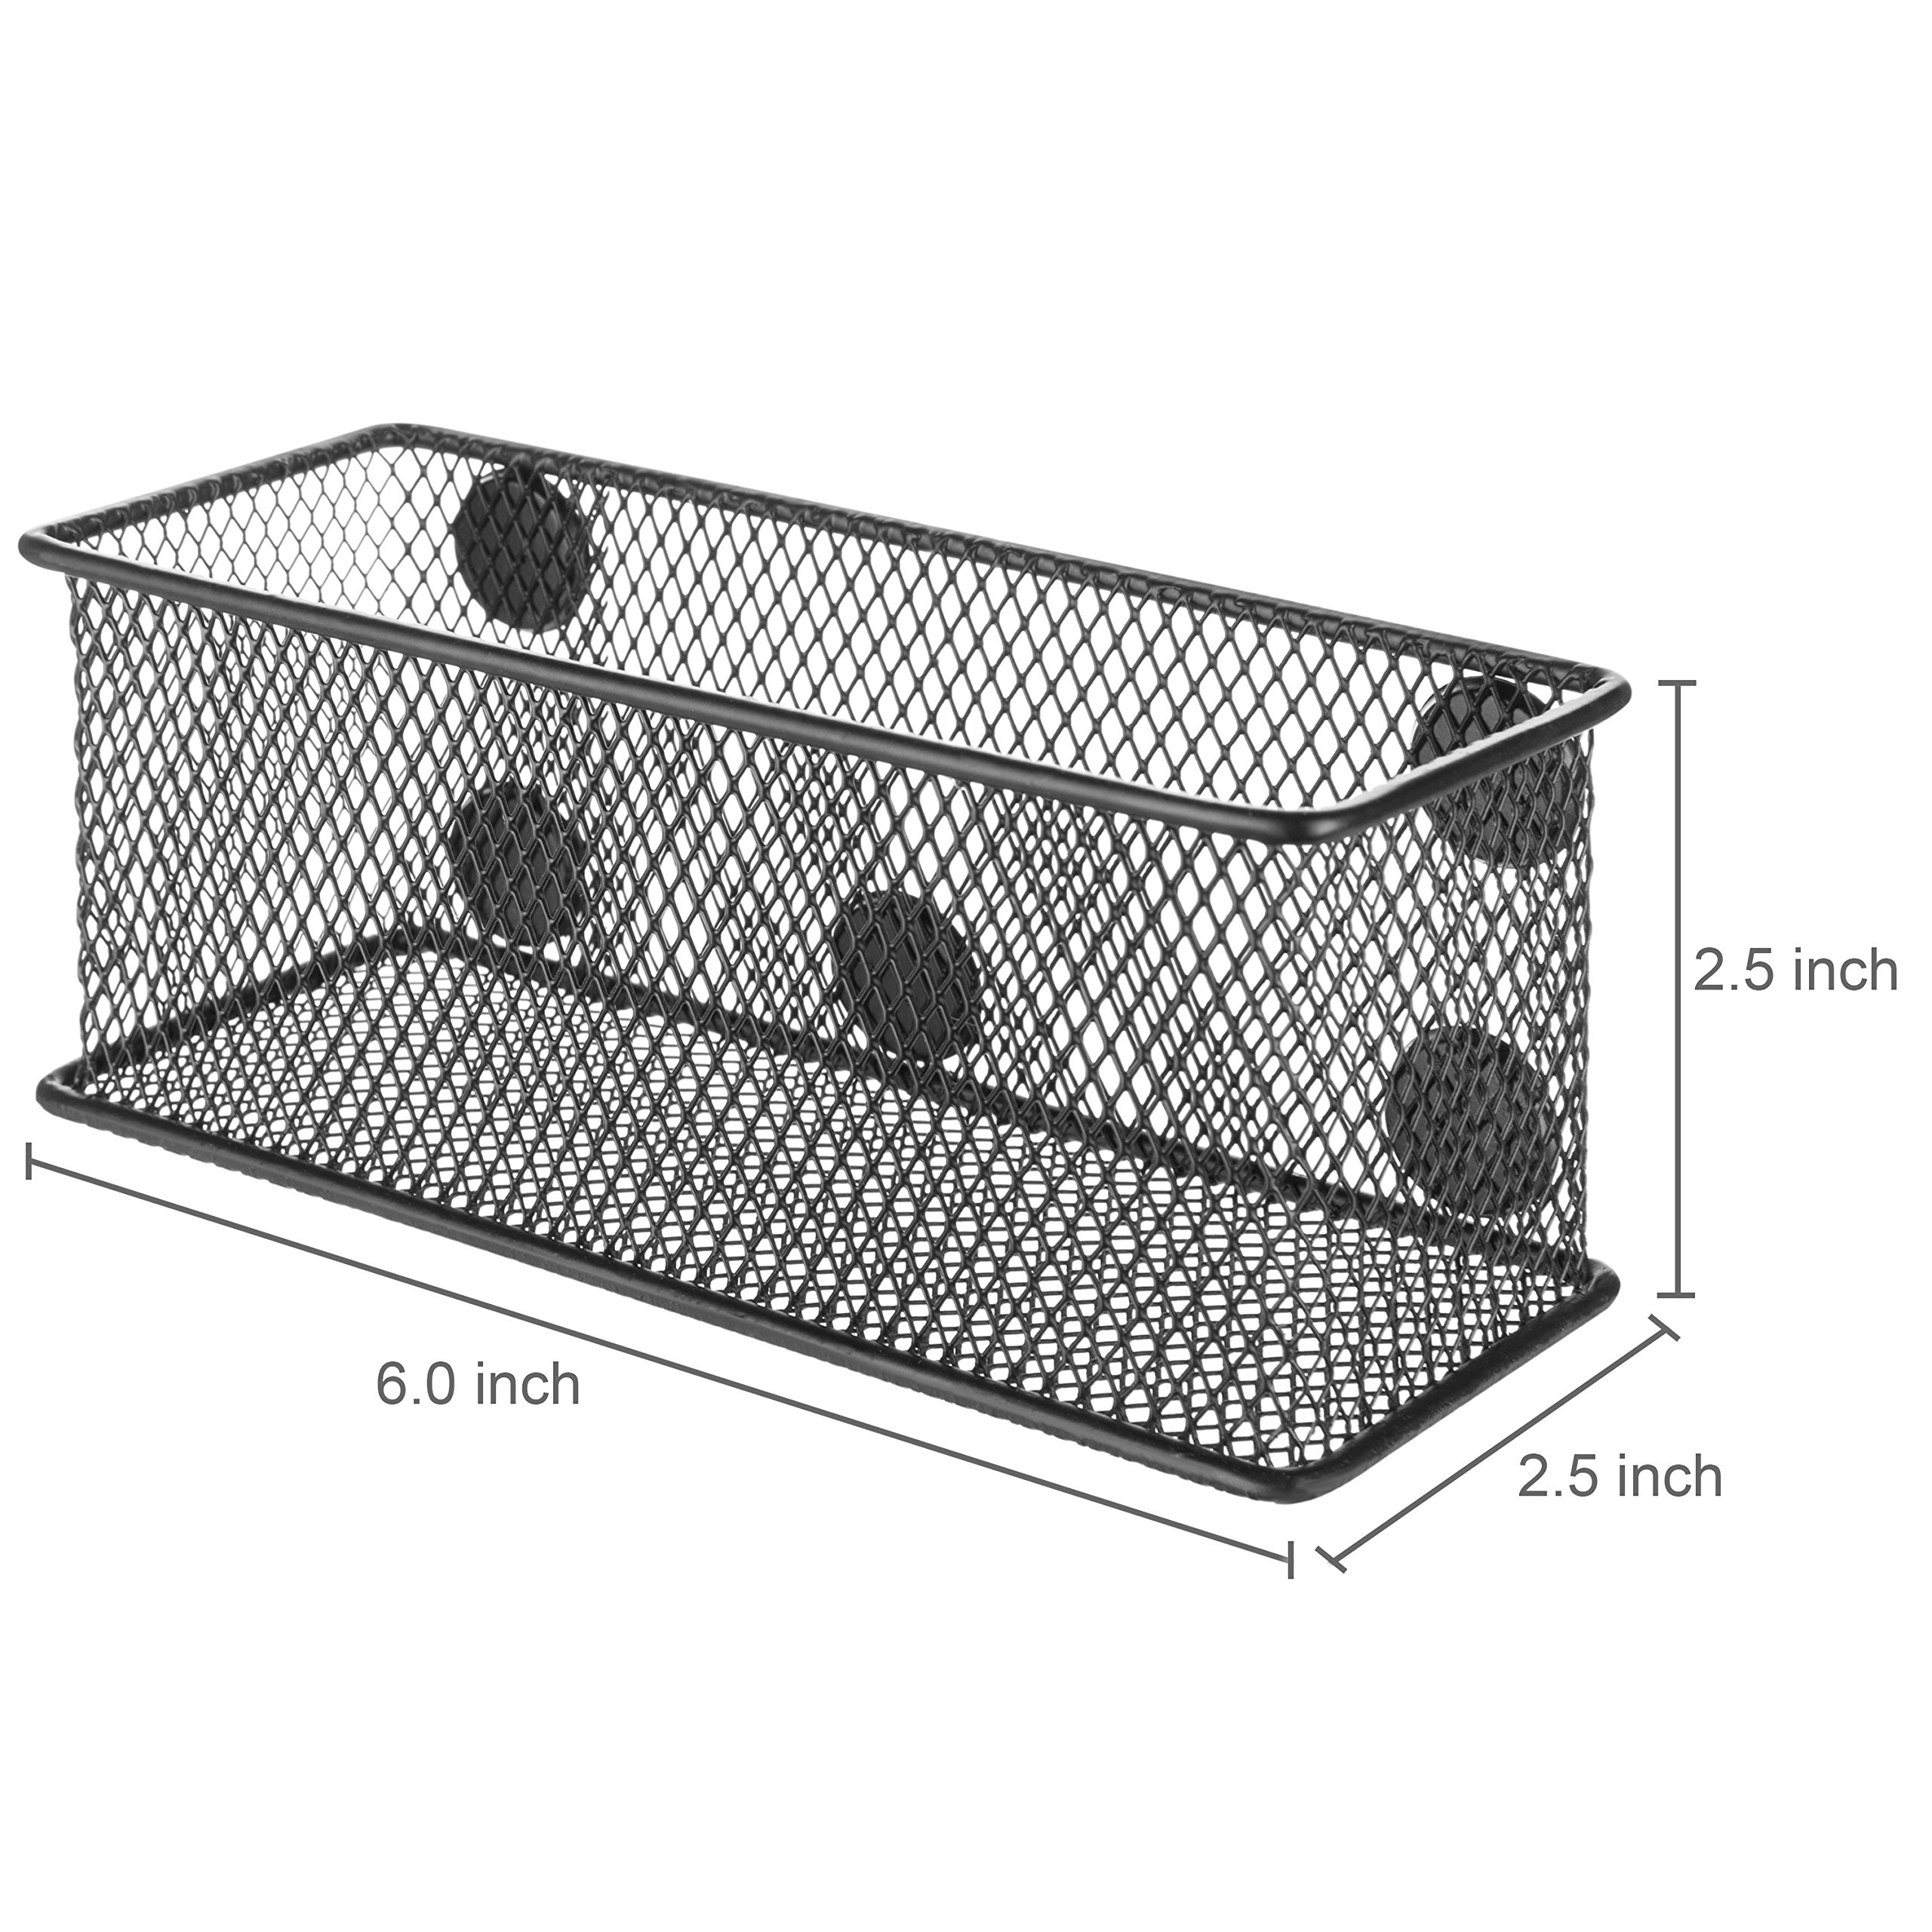 MyGift Wire Mesh Magnetic Storage Baskets, Office Supply Organizer, Set of 6, Black by MyGift (Image #7)